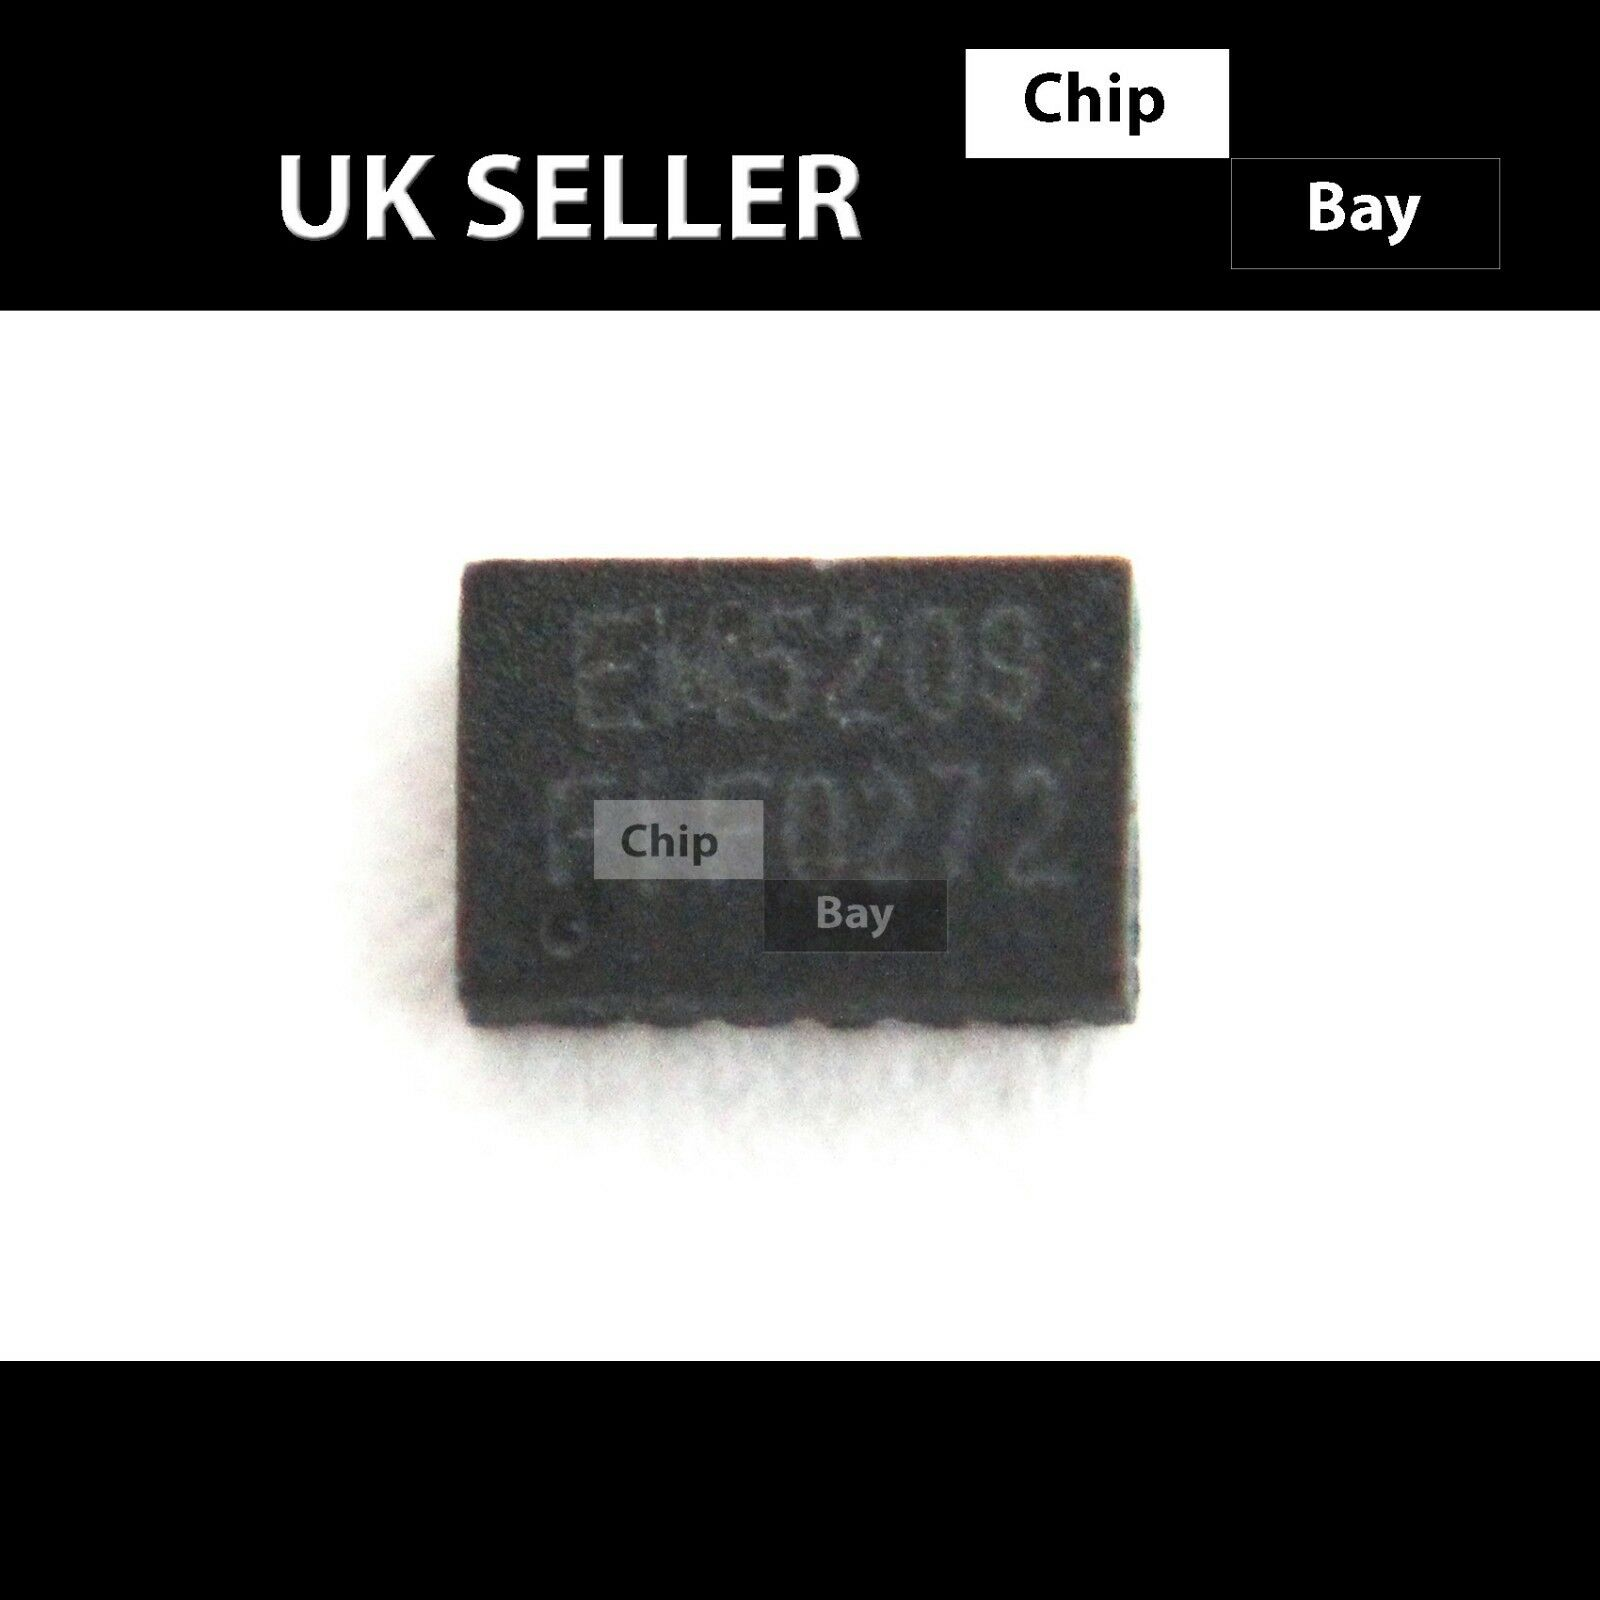 Em5209vf Em5209 Dual Channel Ultra Low Resistance Switch Ic 699 1 Of 2only 5 Available